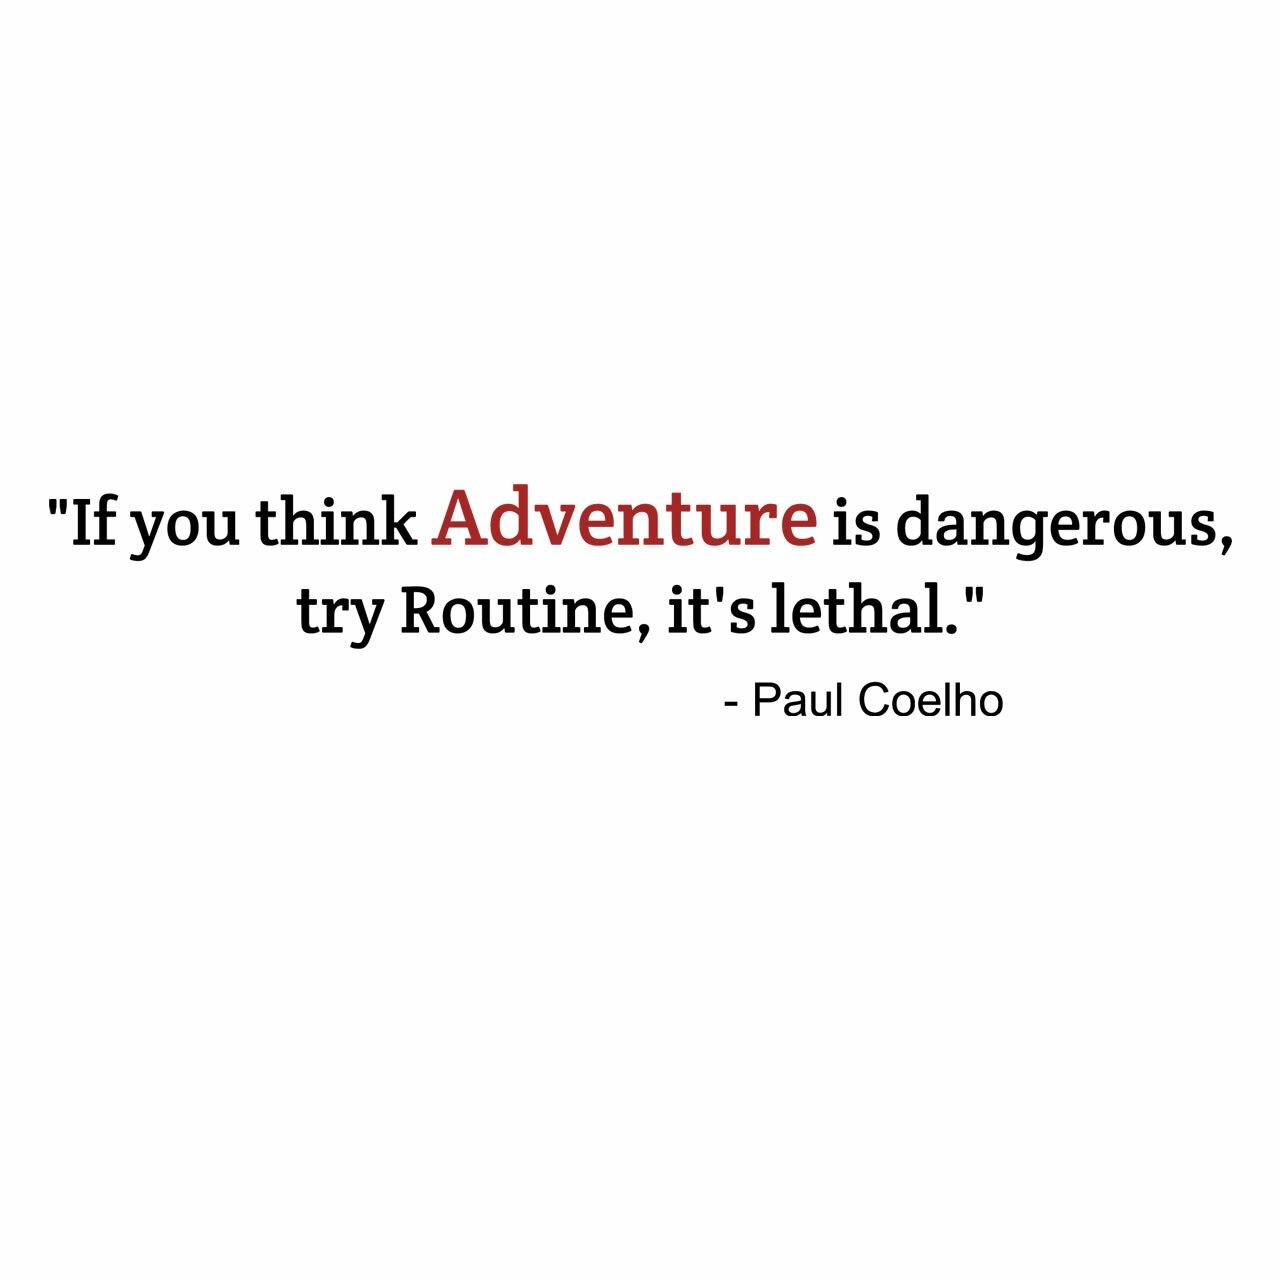 If you think Adventure is dangerous, try routine, it's lethal -Paul Coelho written in black with the word Adventure in red on a white background